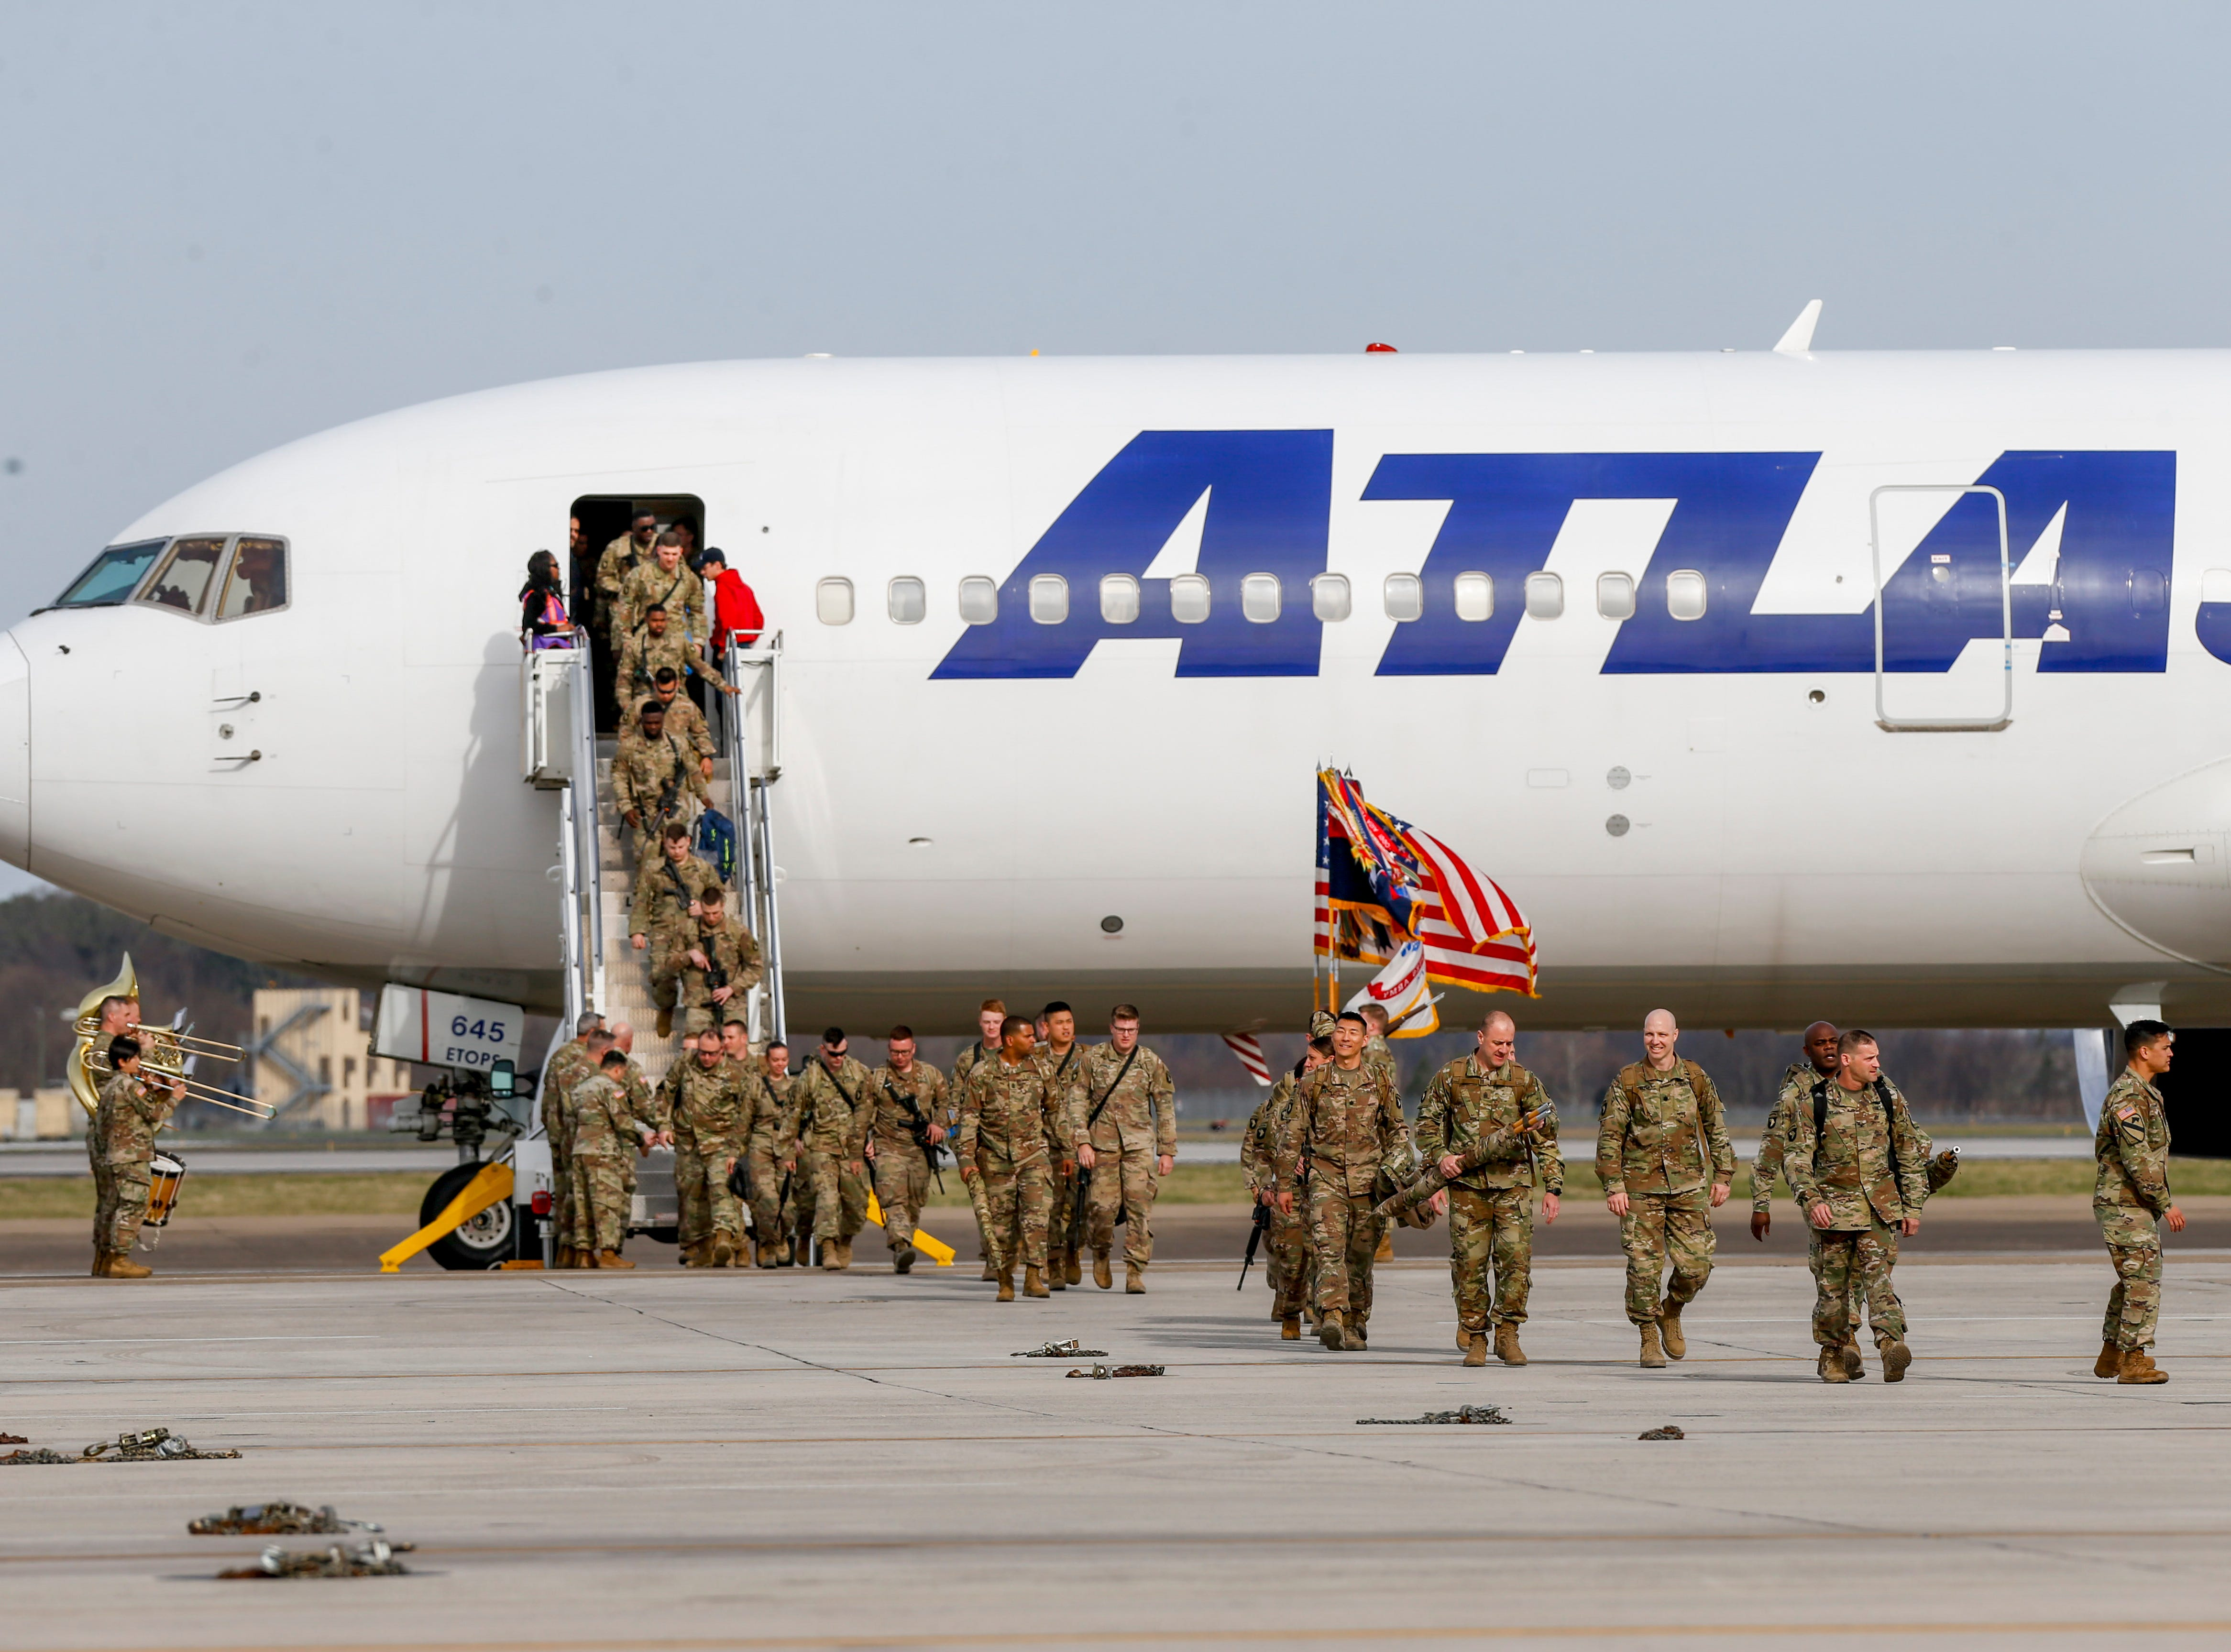 Troops walk off of the airplane during the return of soldiers from the 101st Combat Aviation Brigade of 101st Airborne Division (Air Assault) at Campbell Army Air Field in Fort Campbell, KY., on Sunday, March 10, 2019.